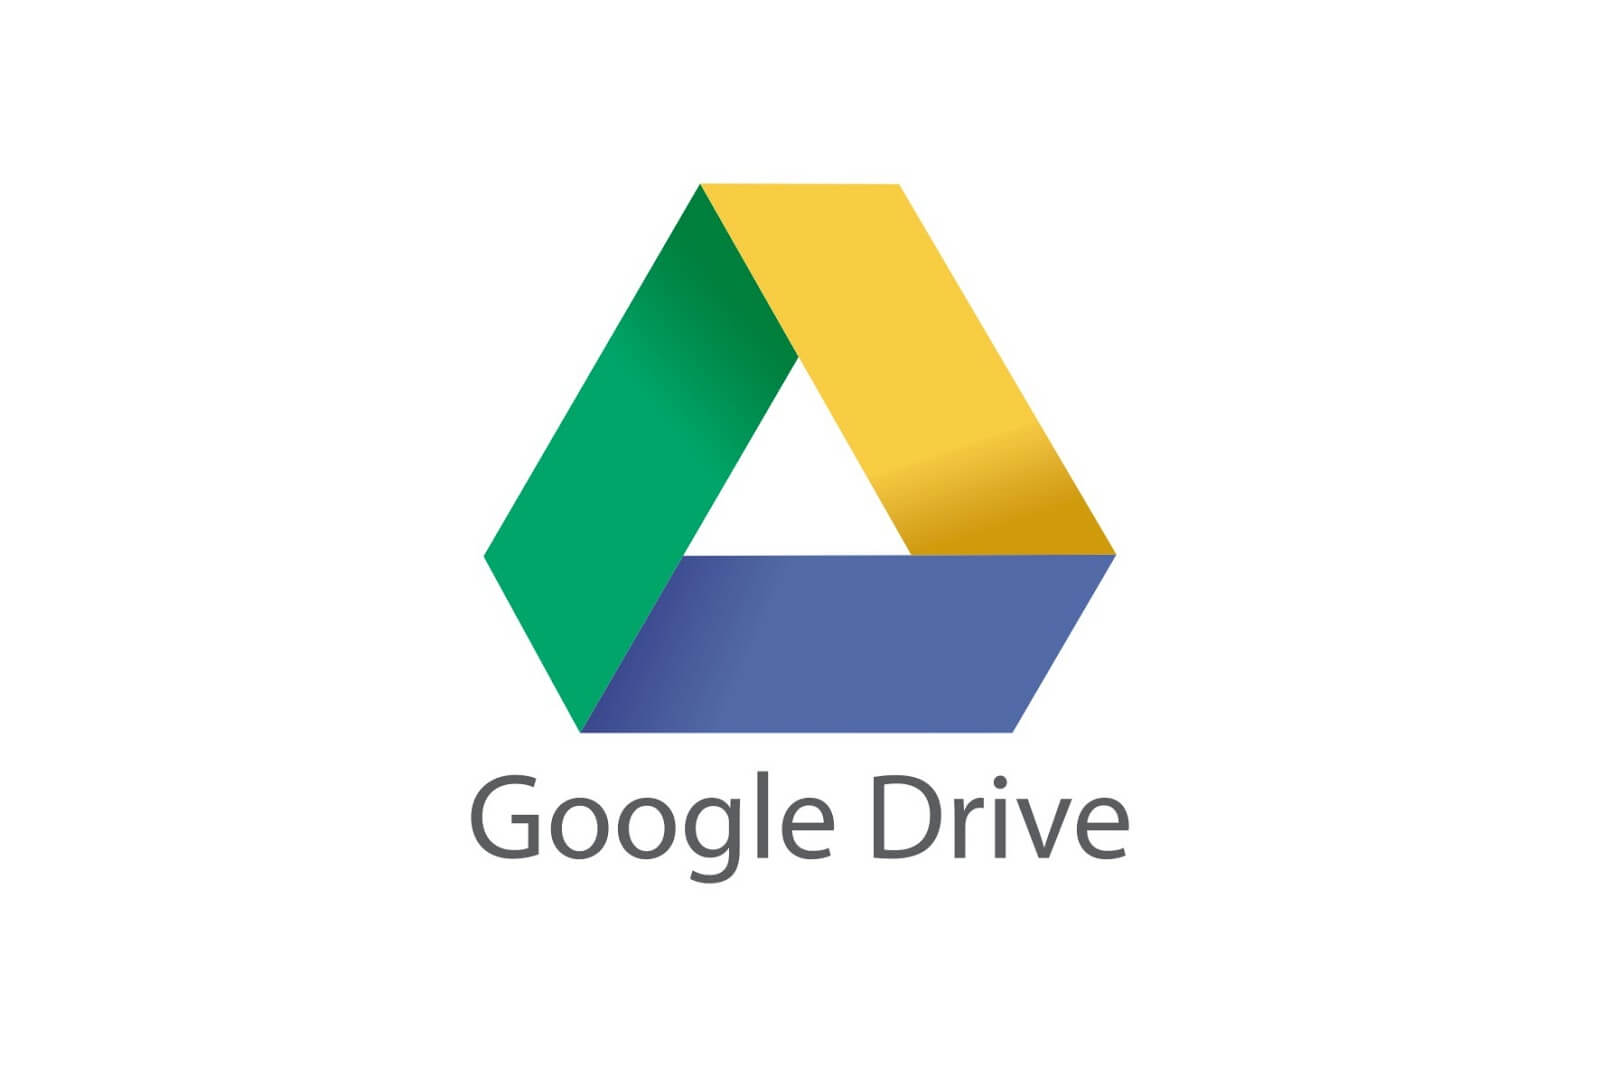 New Google Drive feature has arrived